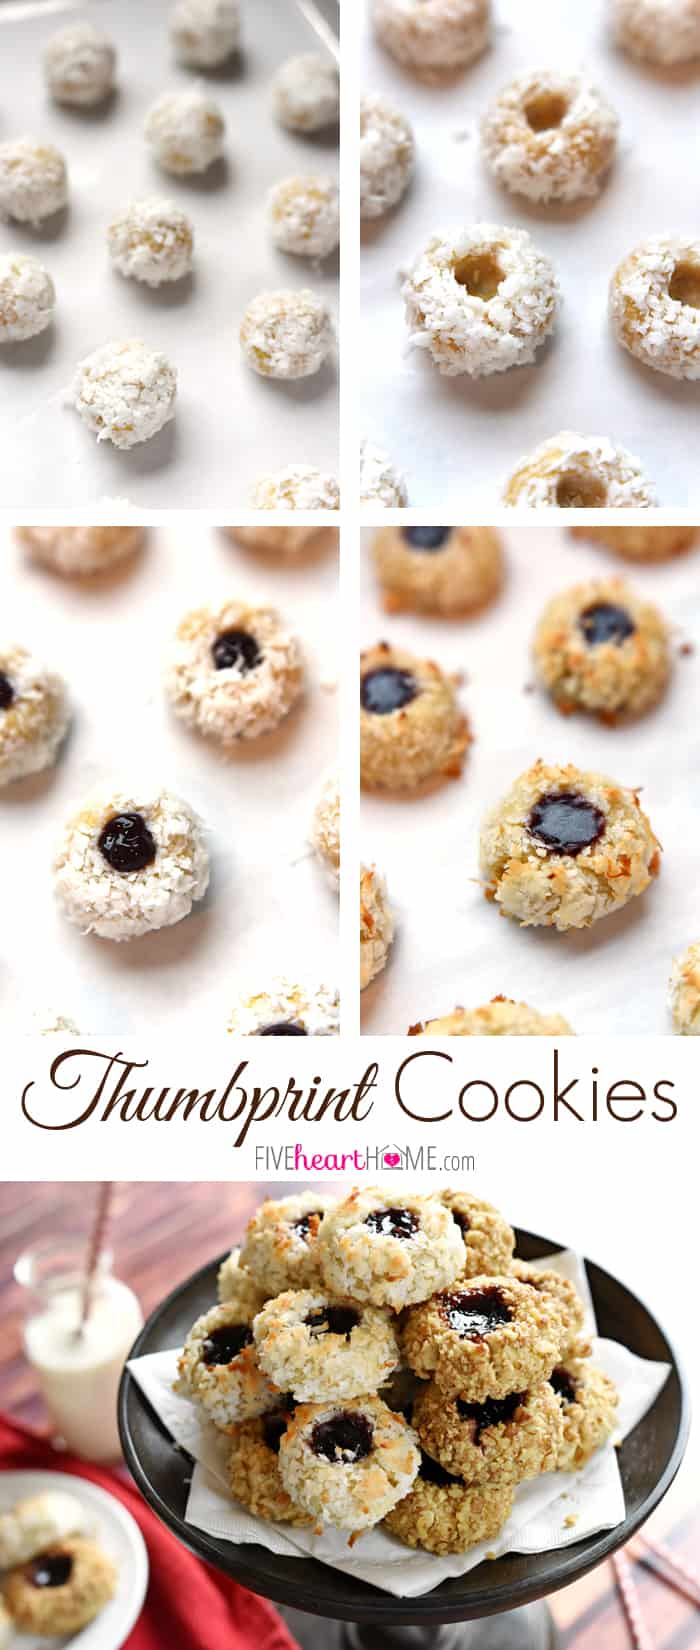 Thumbprint Cookies Collage with Text Overlay